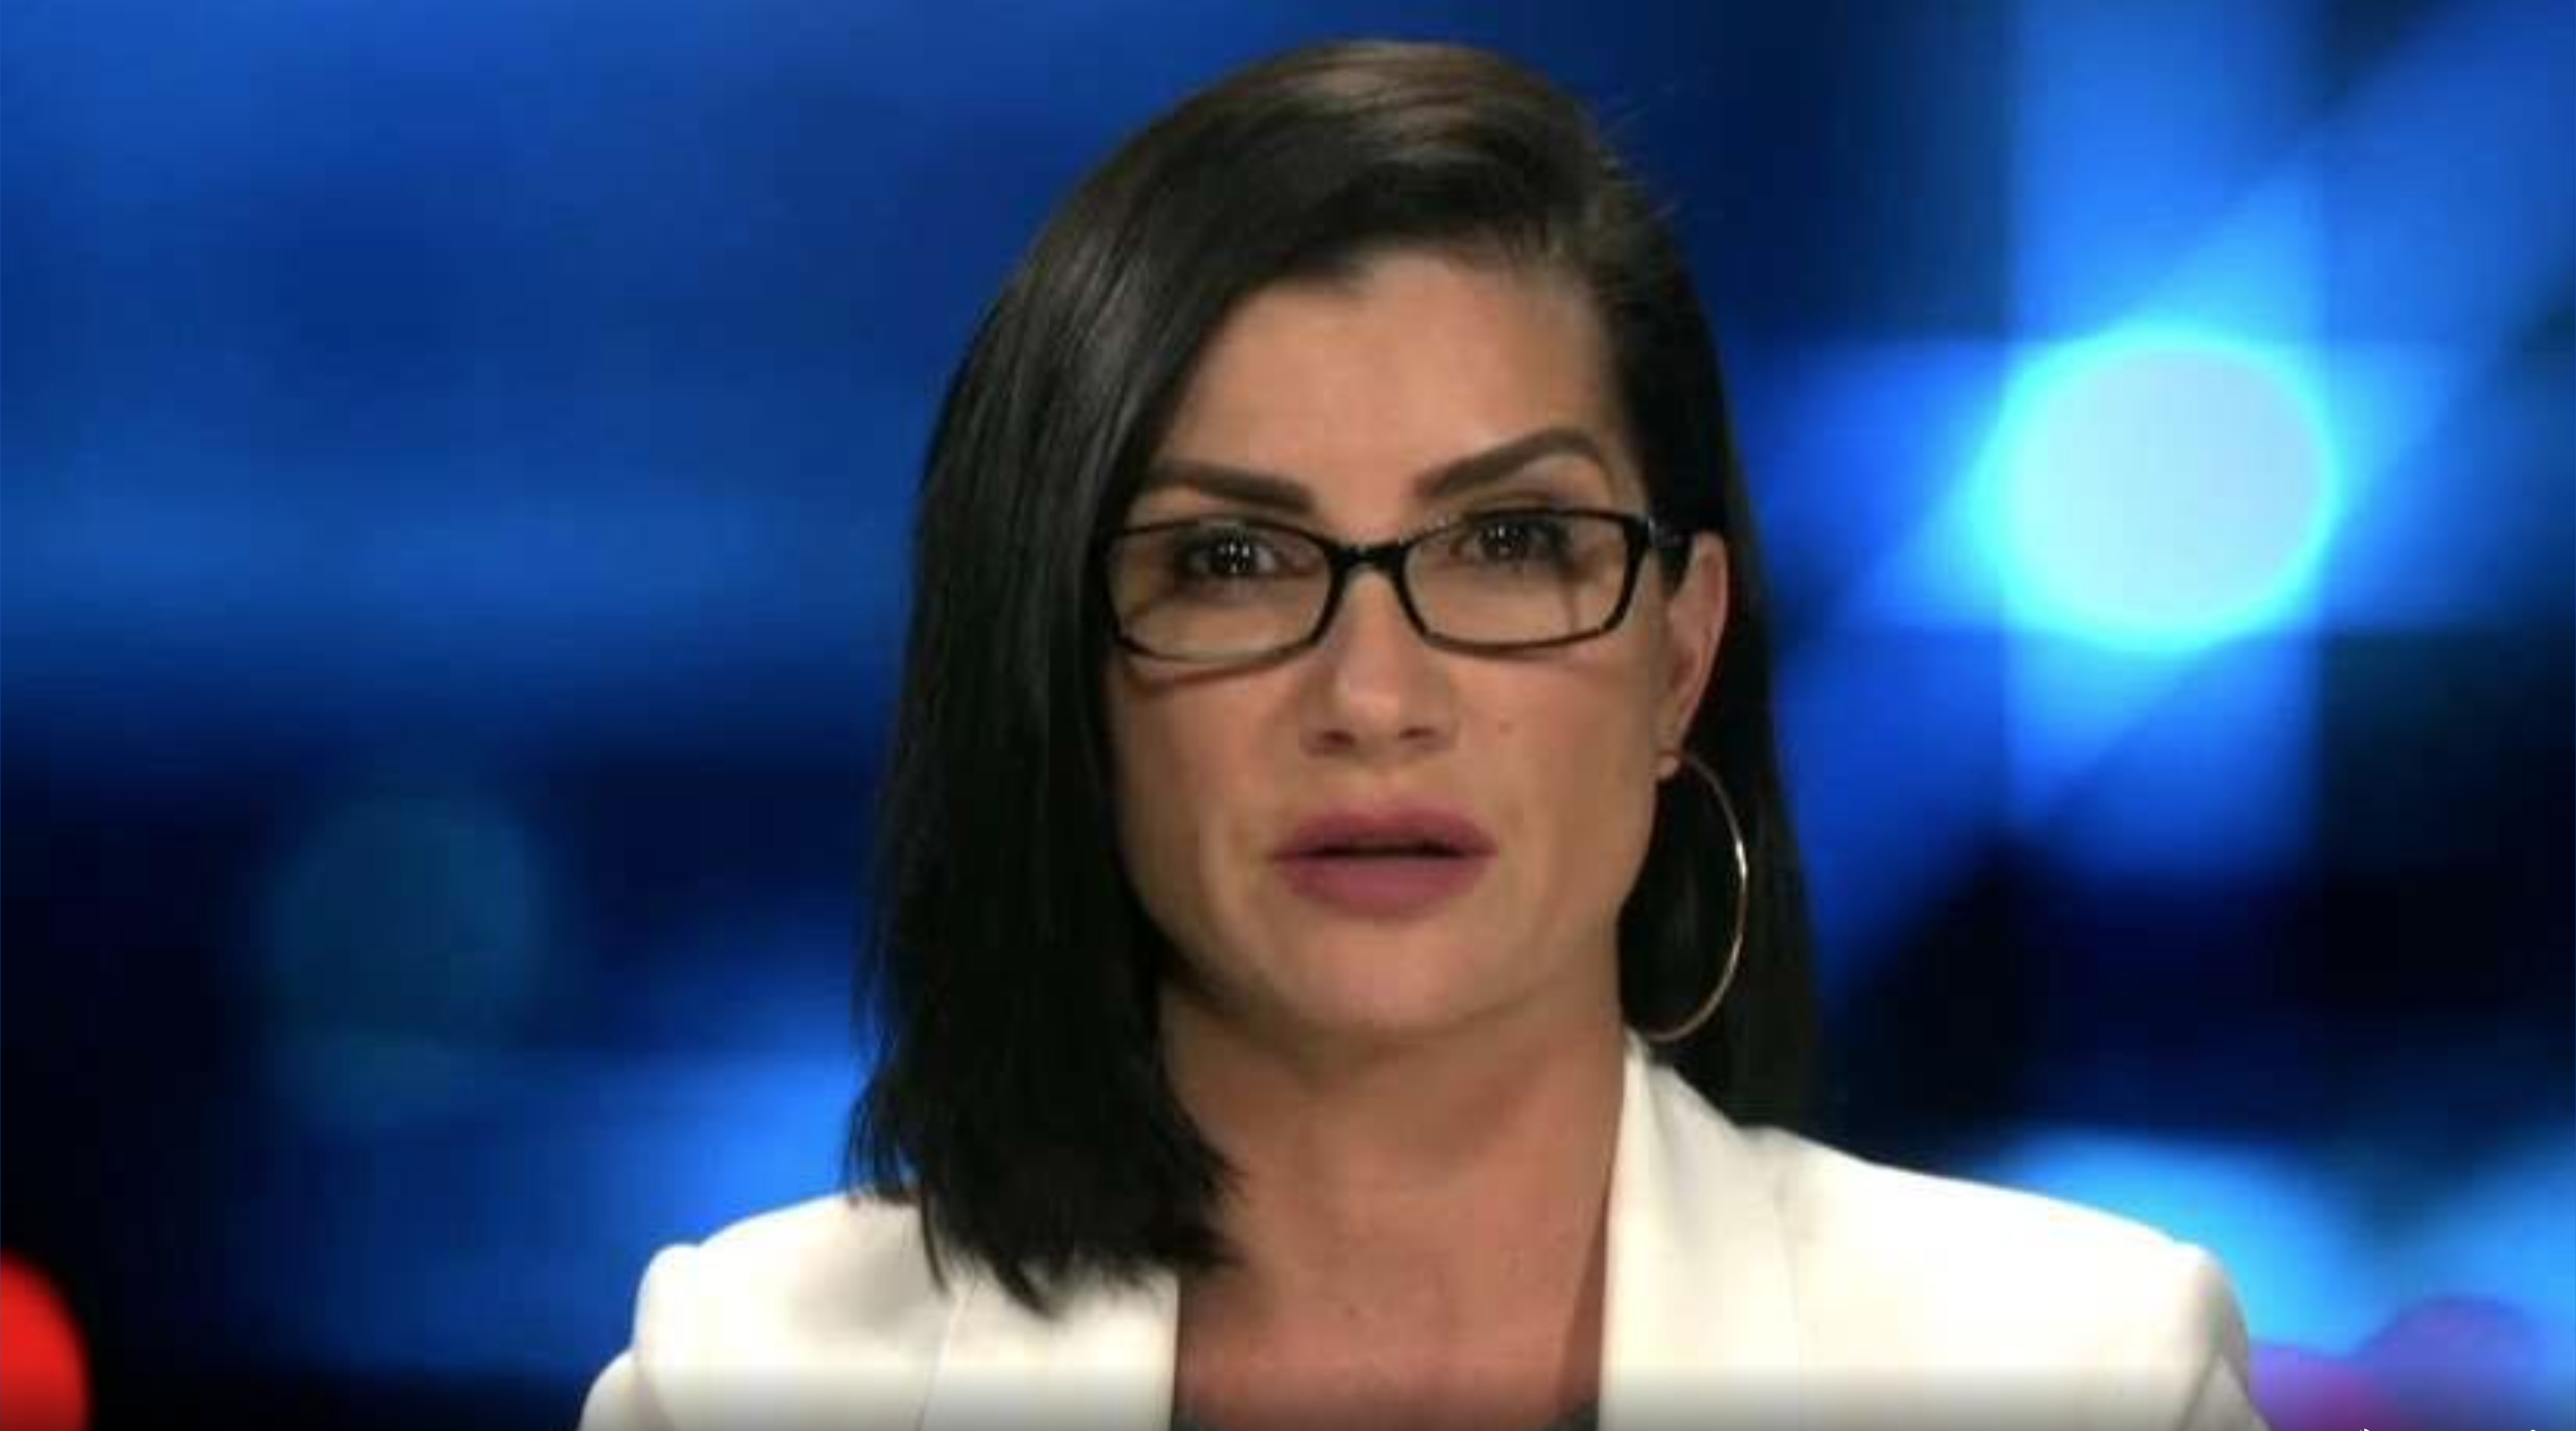 Dana Loesch calls for 'real bipartisan discussions' to tackle mass shooting prevention